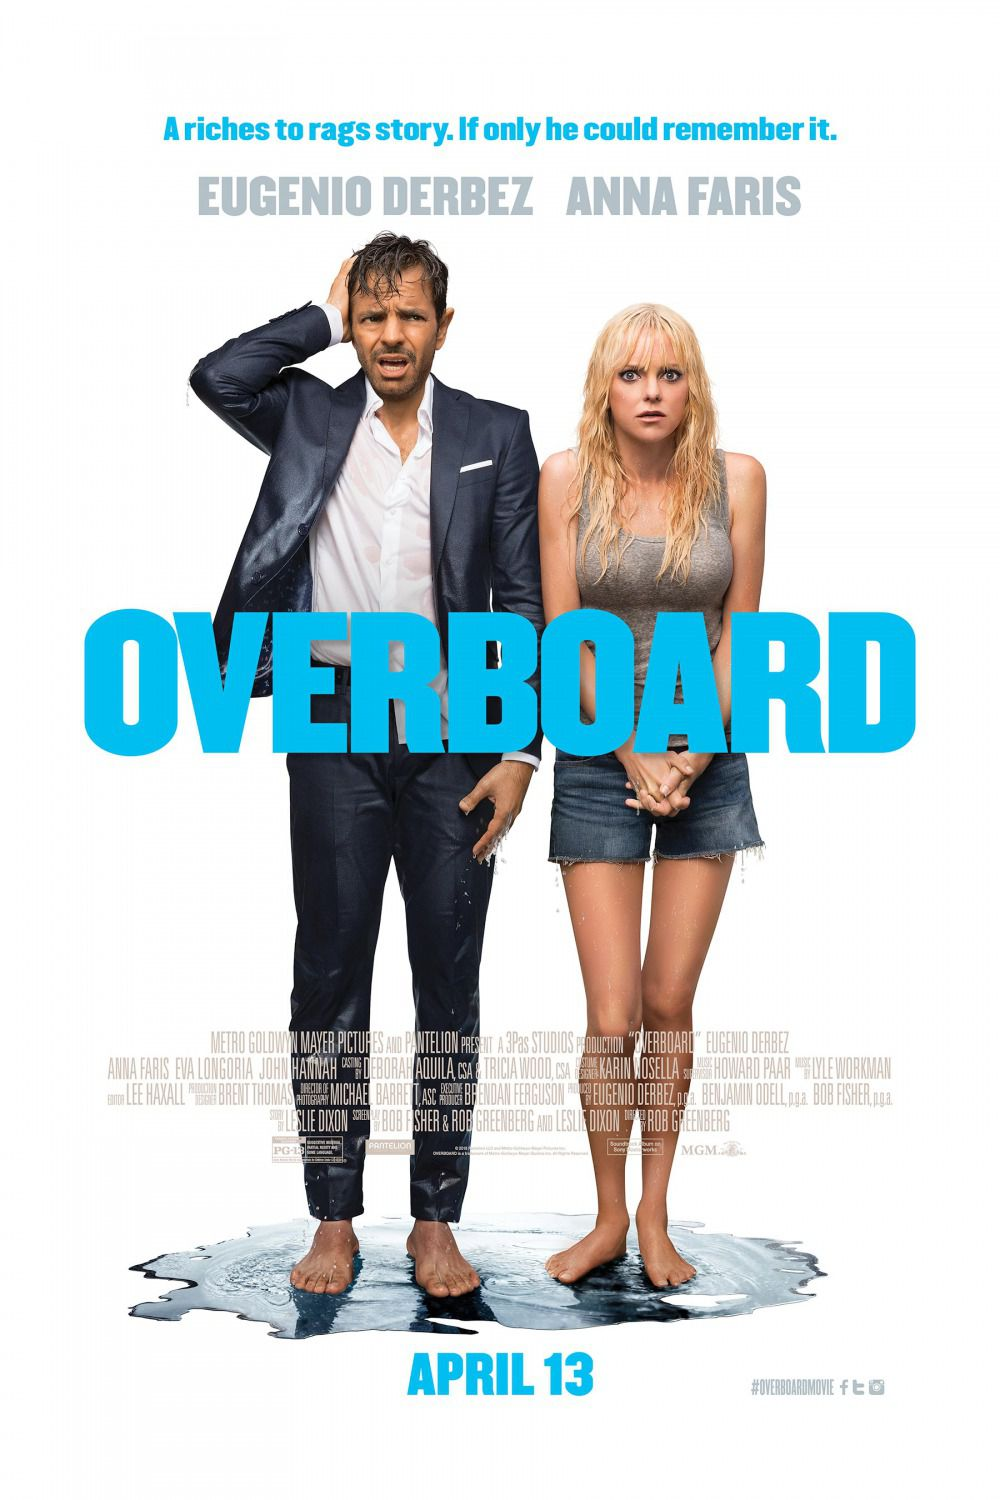 Overboard - Eugenio Derbez, Anna Faris - riches to rags story if only he could remember it - comedy film poster 2018